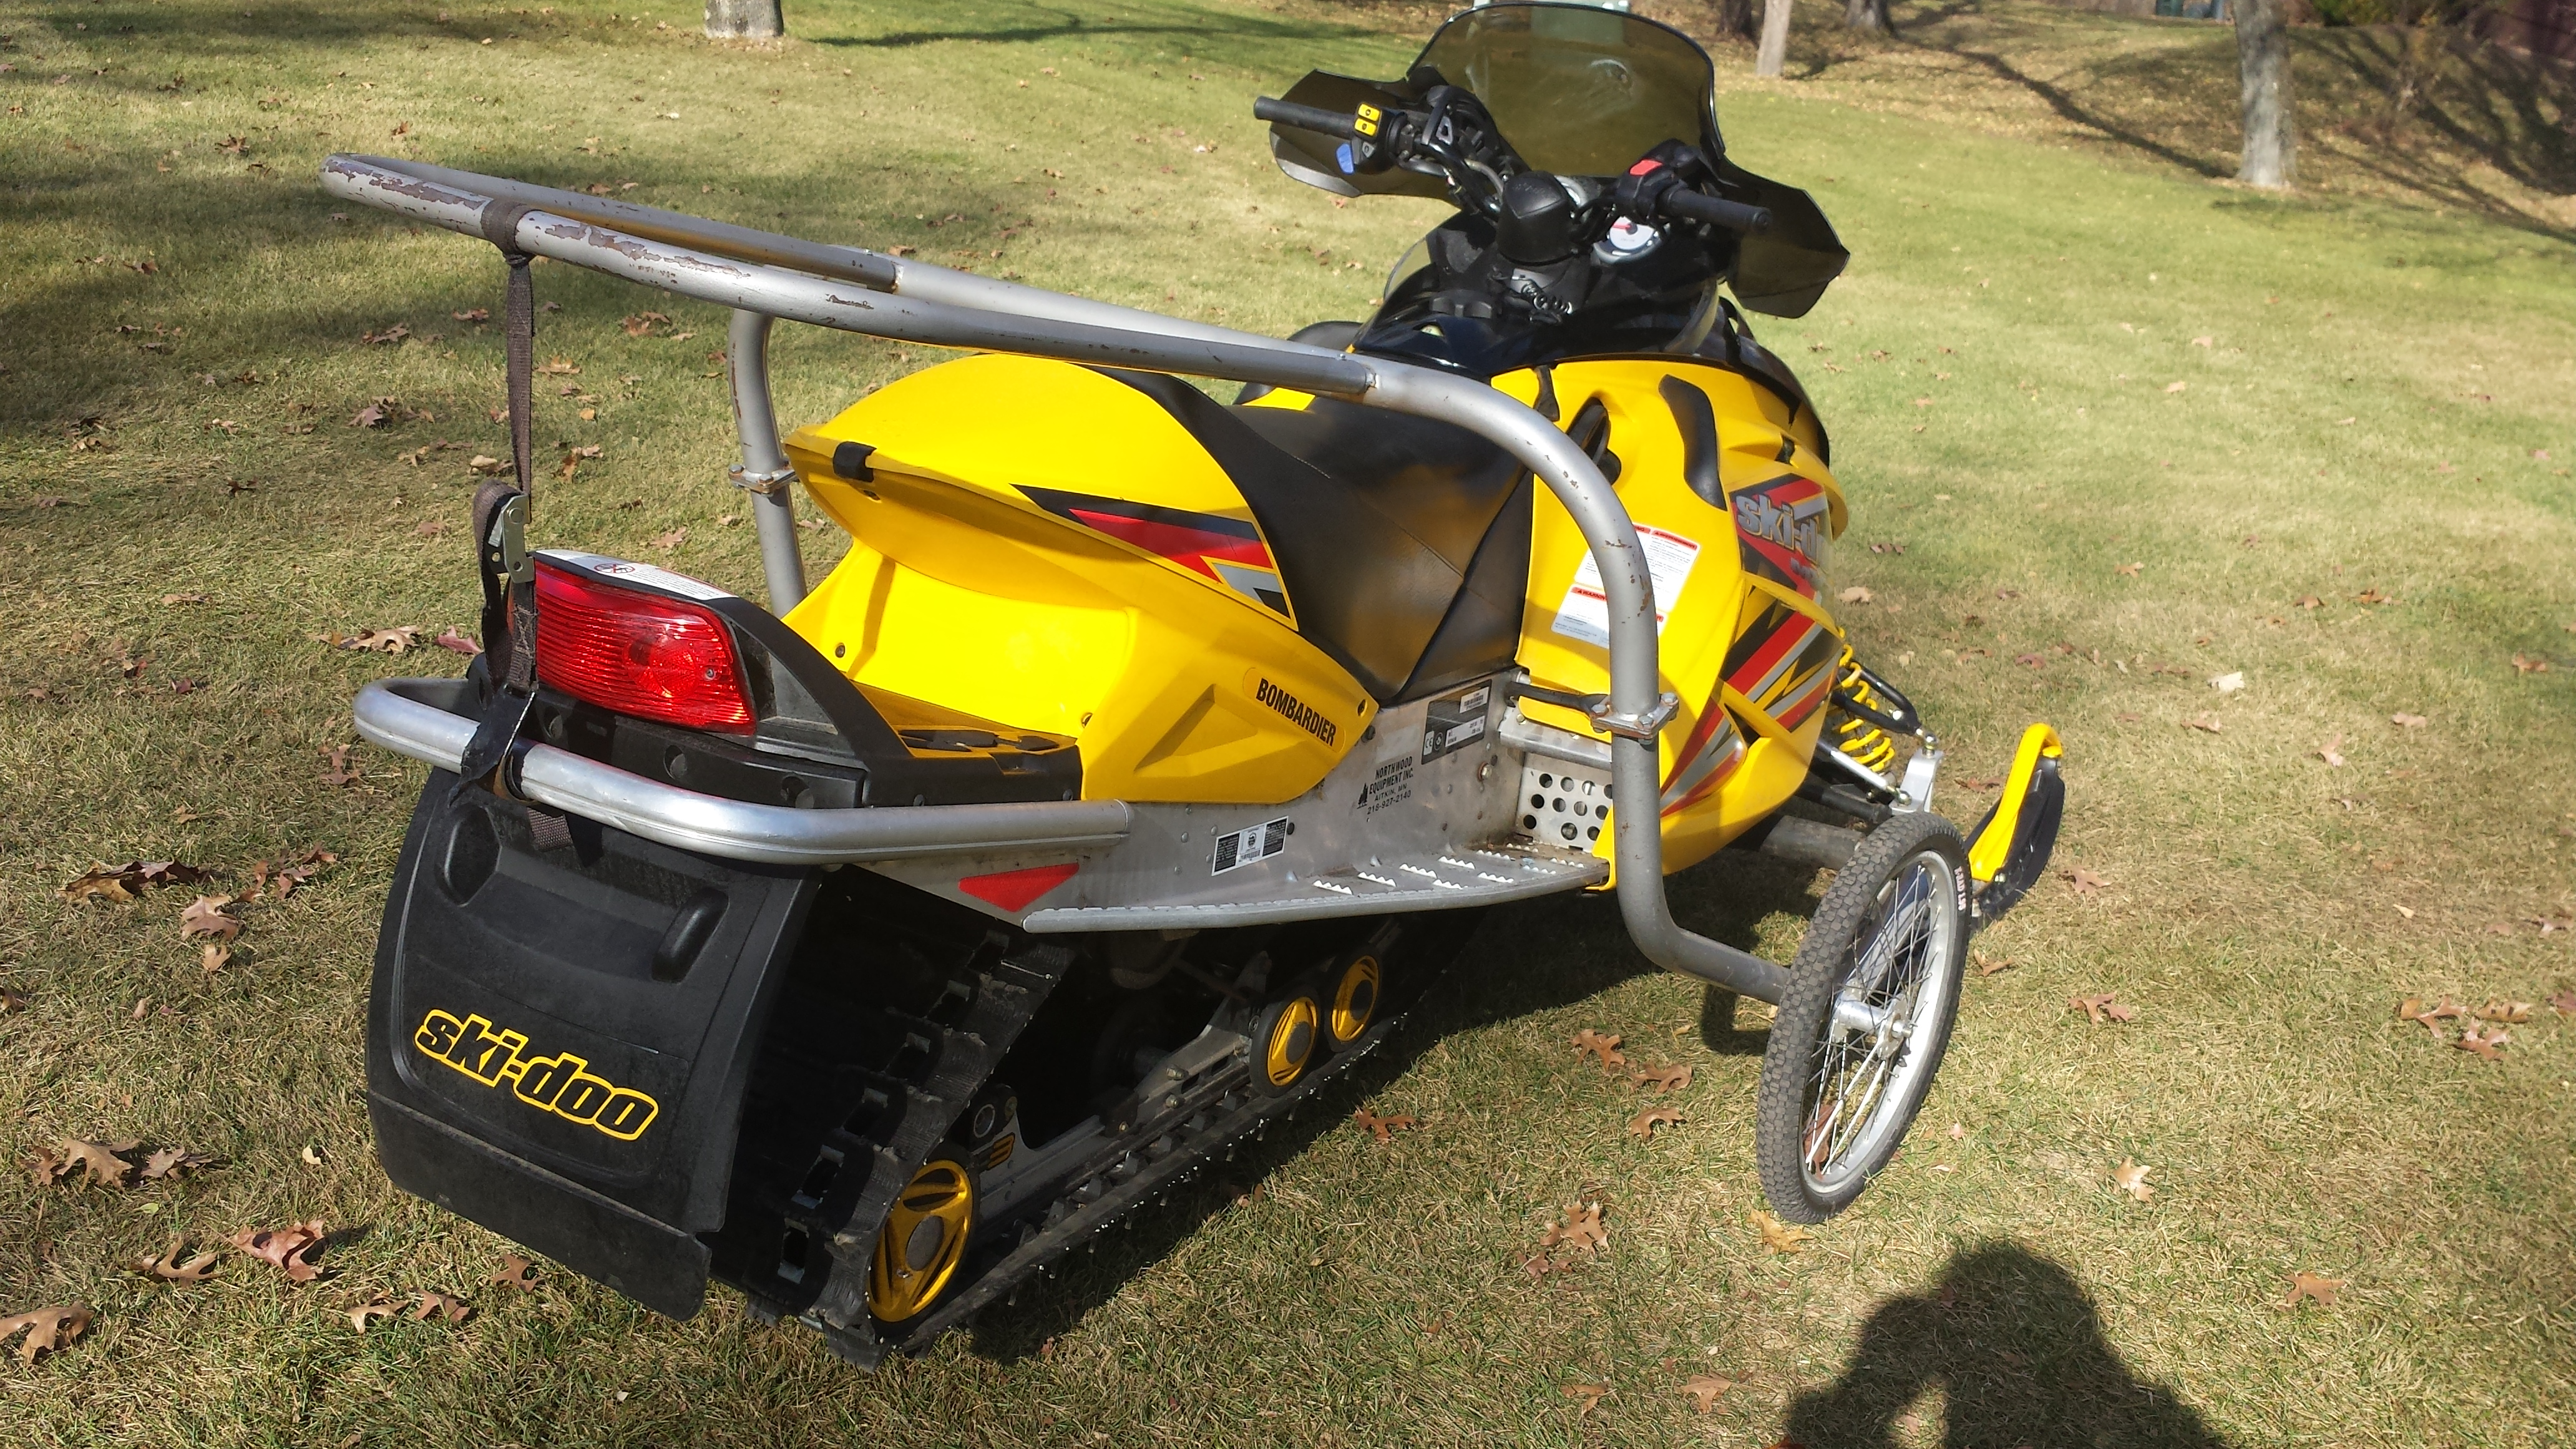 Parts available from 2005 Ski Doo MXZ 800 yellow